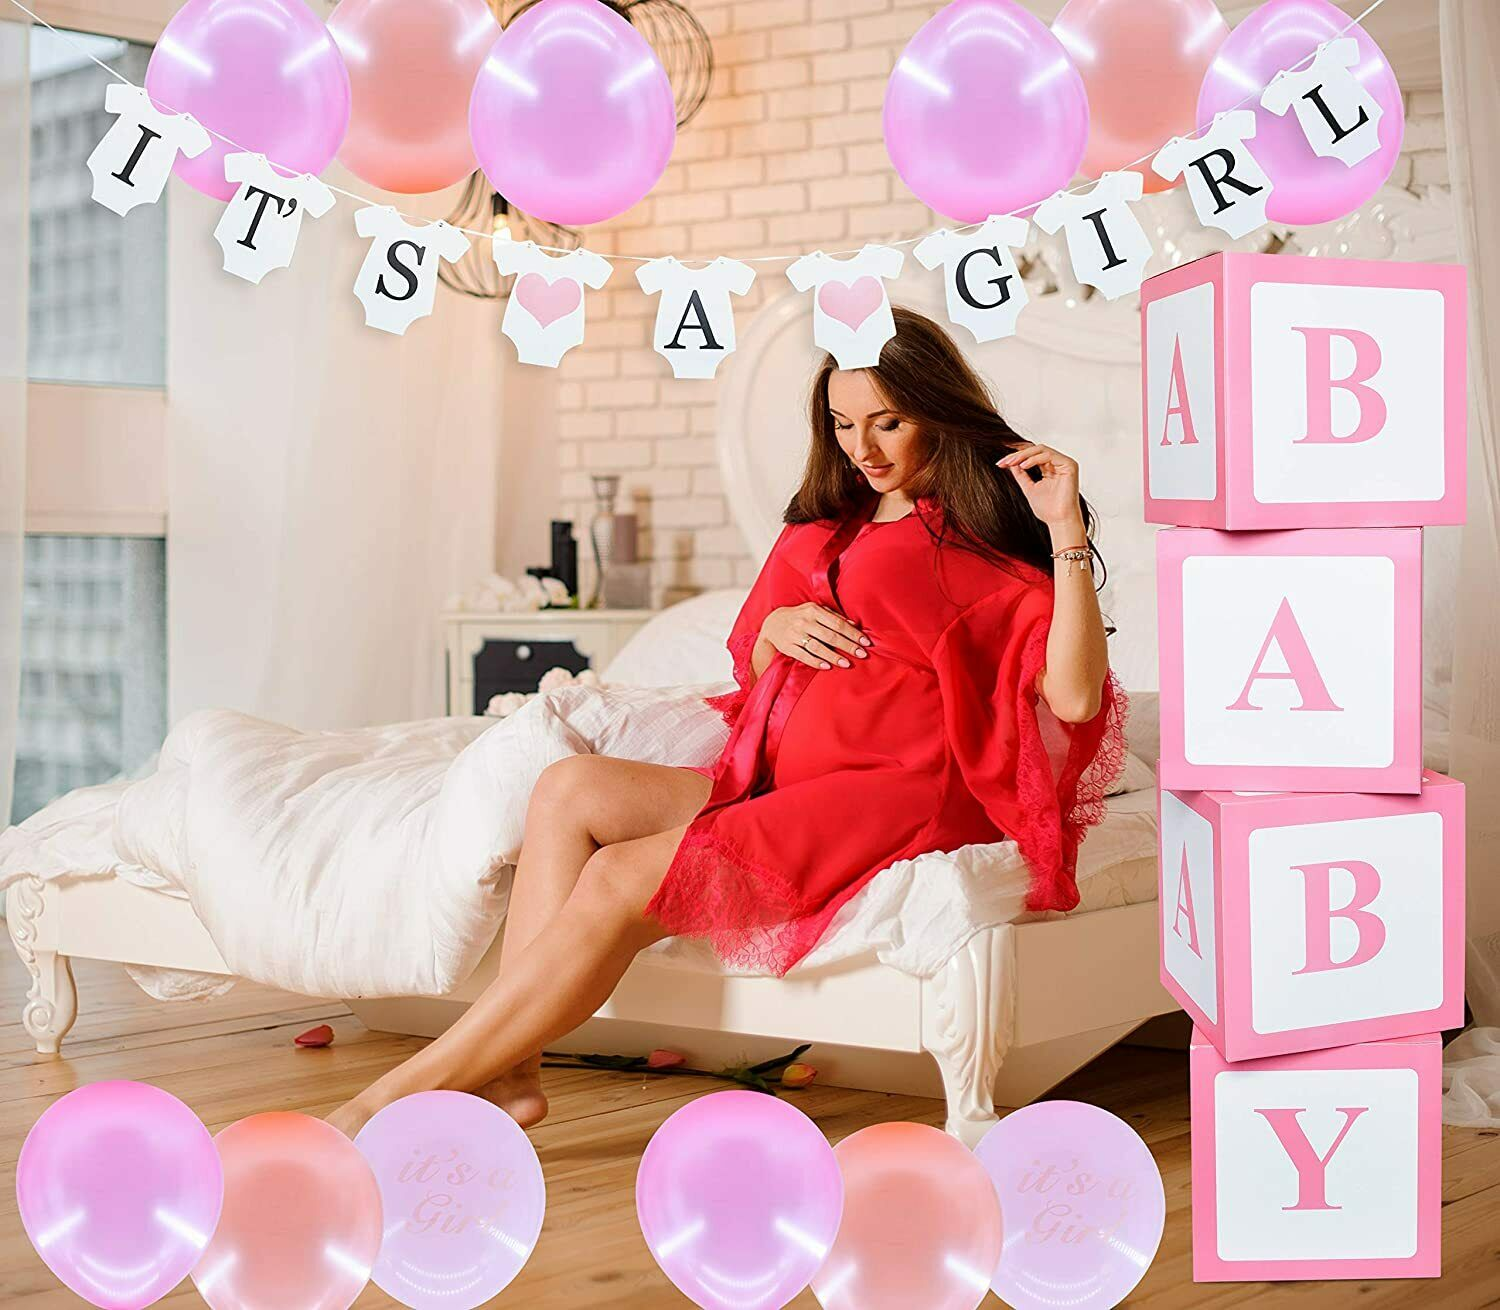 It's a Girl Baby Shower Decoration Pink for Girls Its a Girl Decoration Elegant Greeting Cards & Party Supply